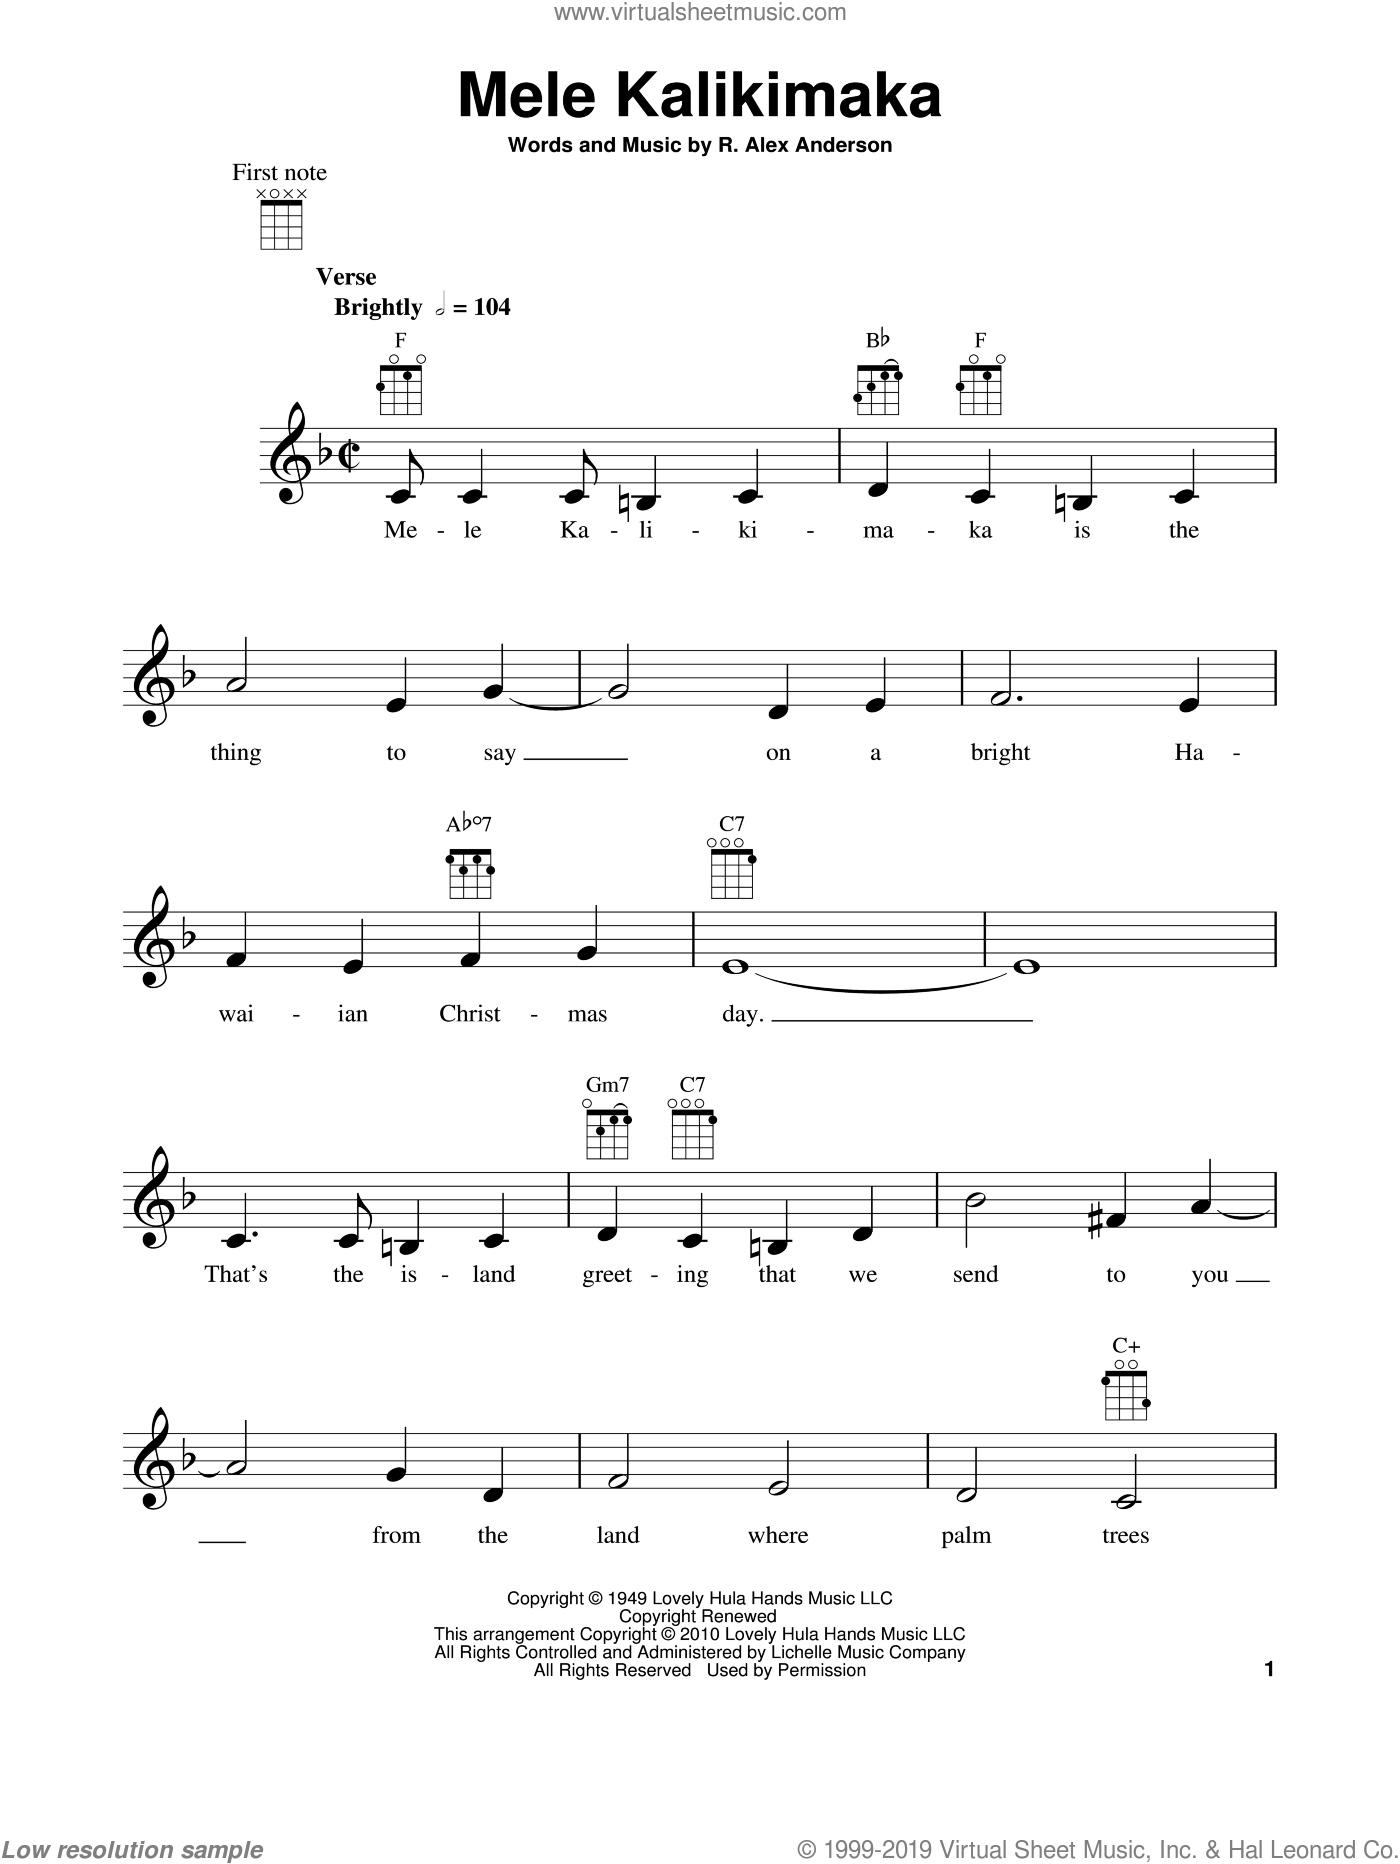 Crosby - Mele Kalikimaka (Merry Christmas In Hawaii) sheet music for ...